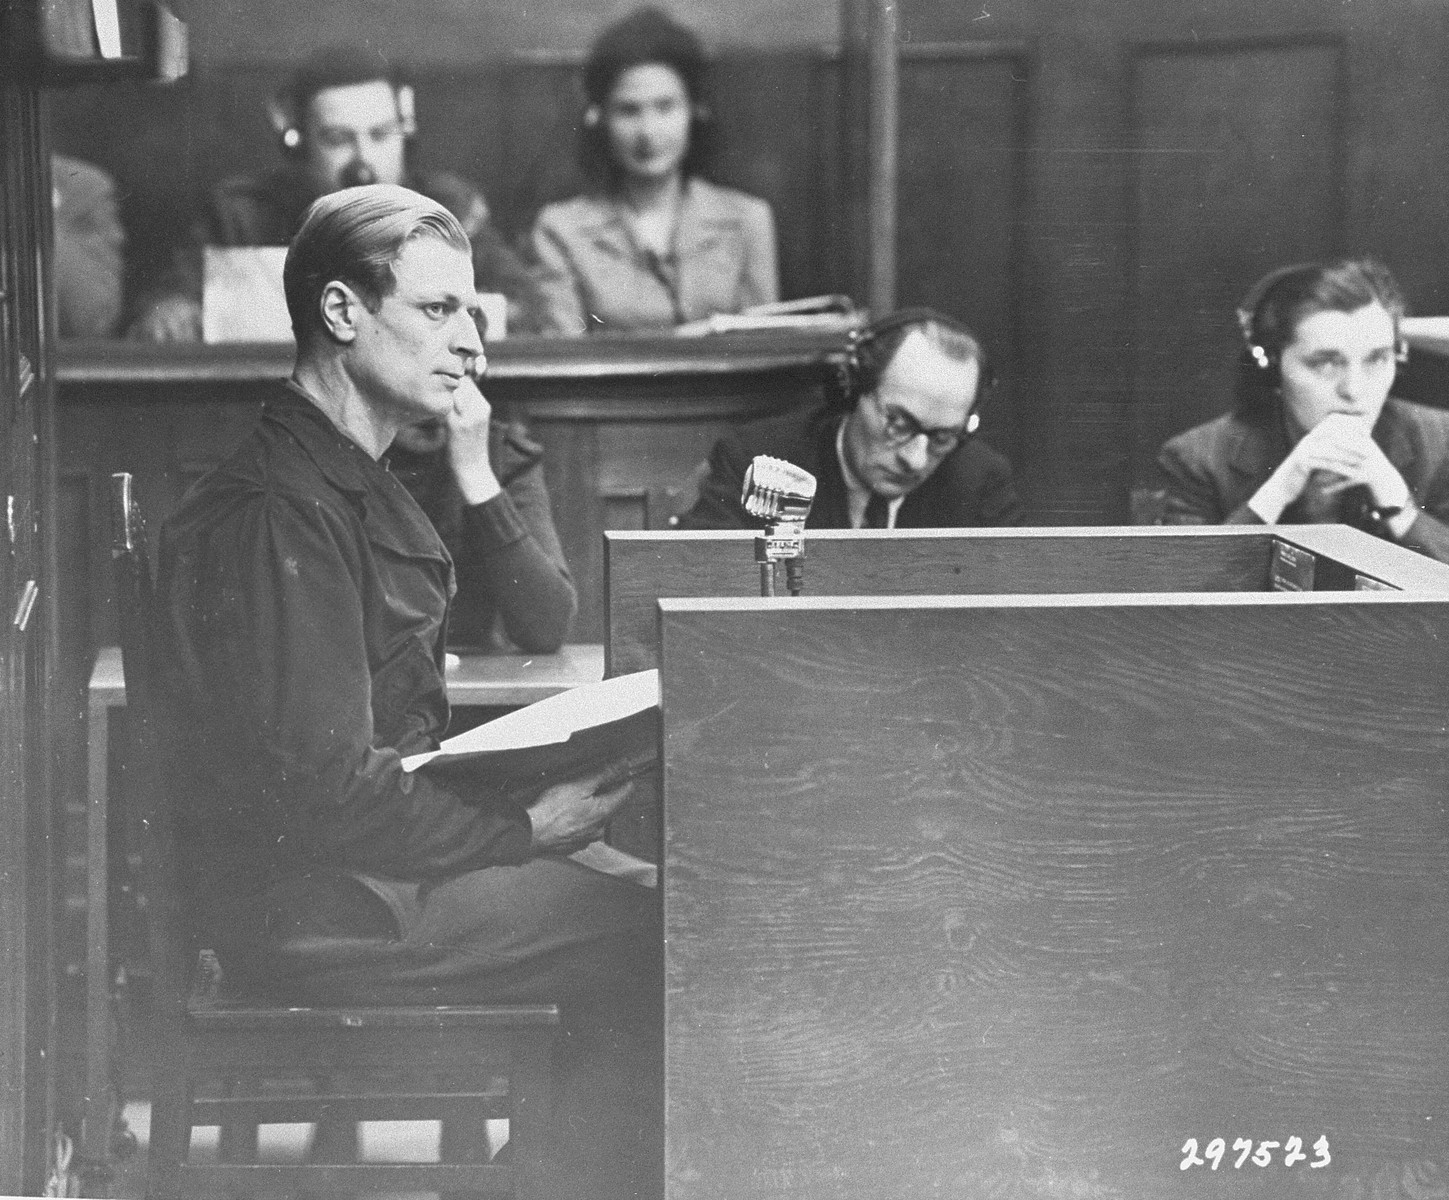 """Dr. Hans Hilmar Staudte, a former """"race examiner"""" in the Rasse- und Siedlungshauptamt, the Race and Settlement Office, testifies as a defense witness at the RuSHA Trial."""